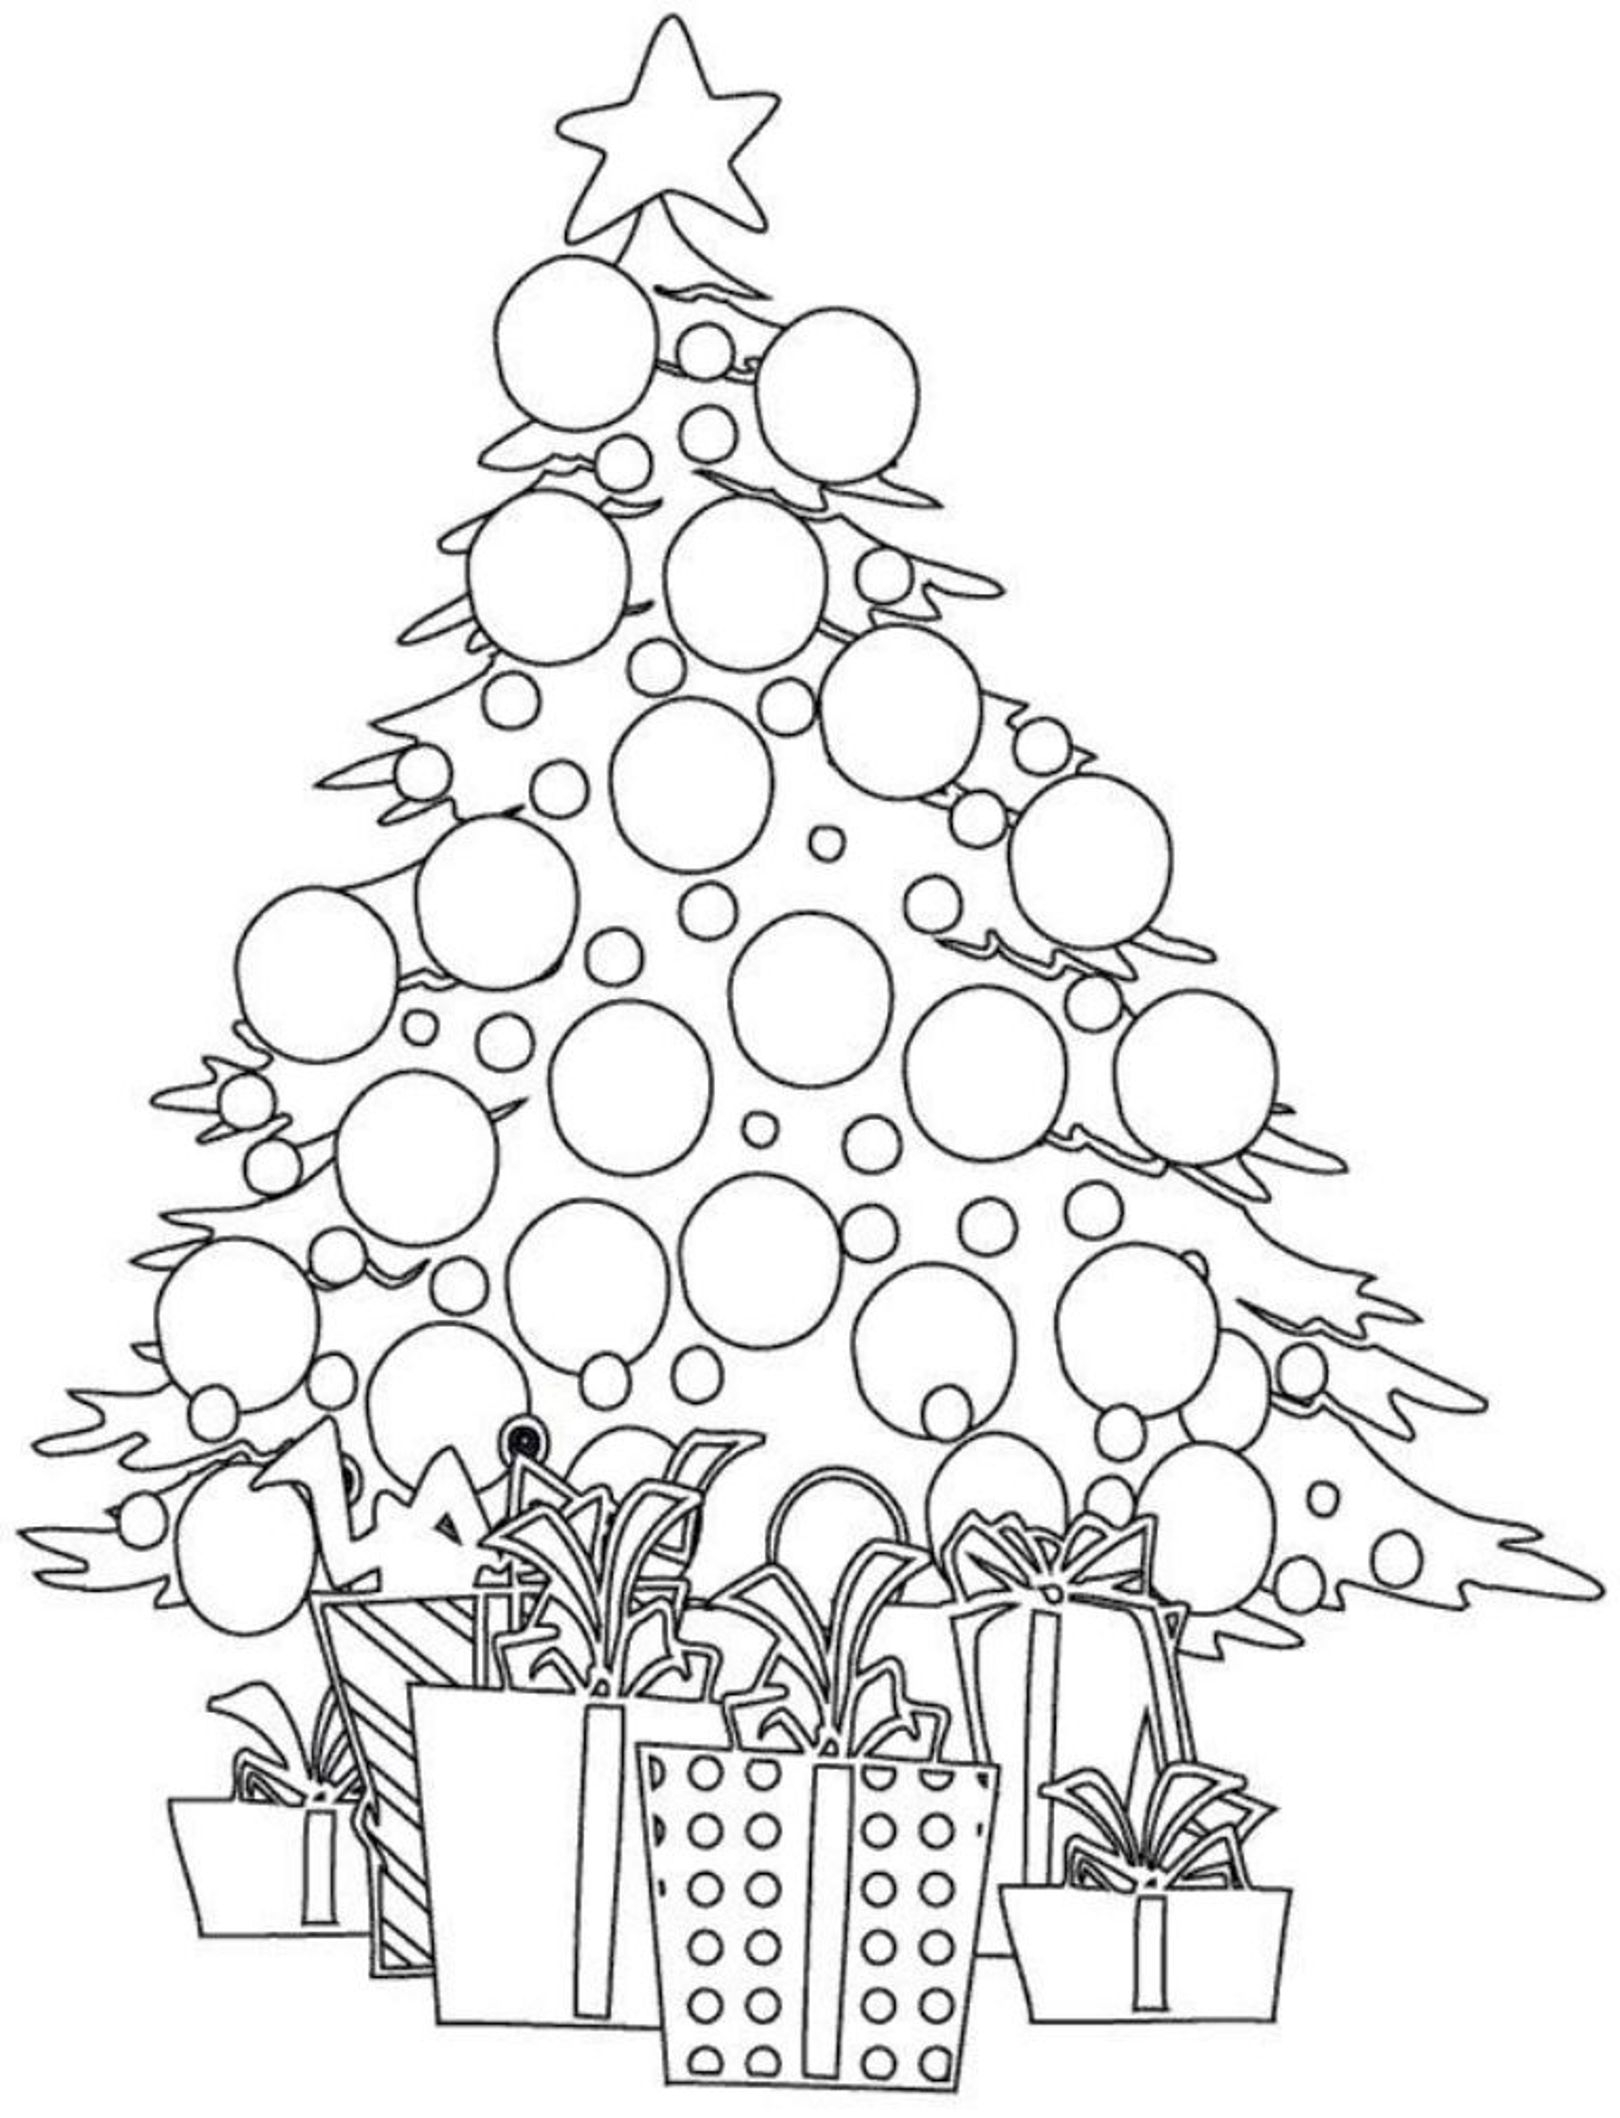 Christmas Tree Colouring Pages For Adults With Coloring Free Books